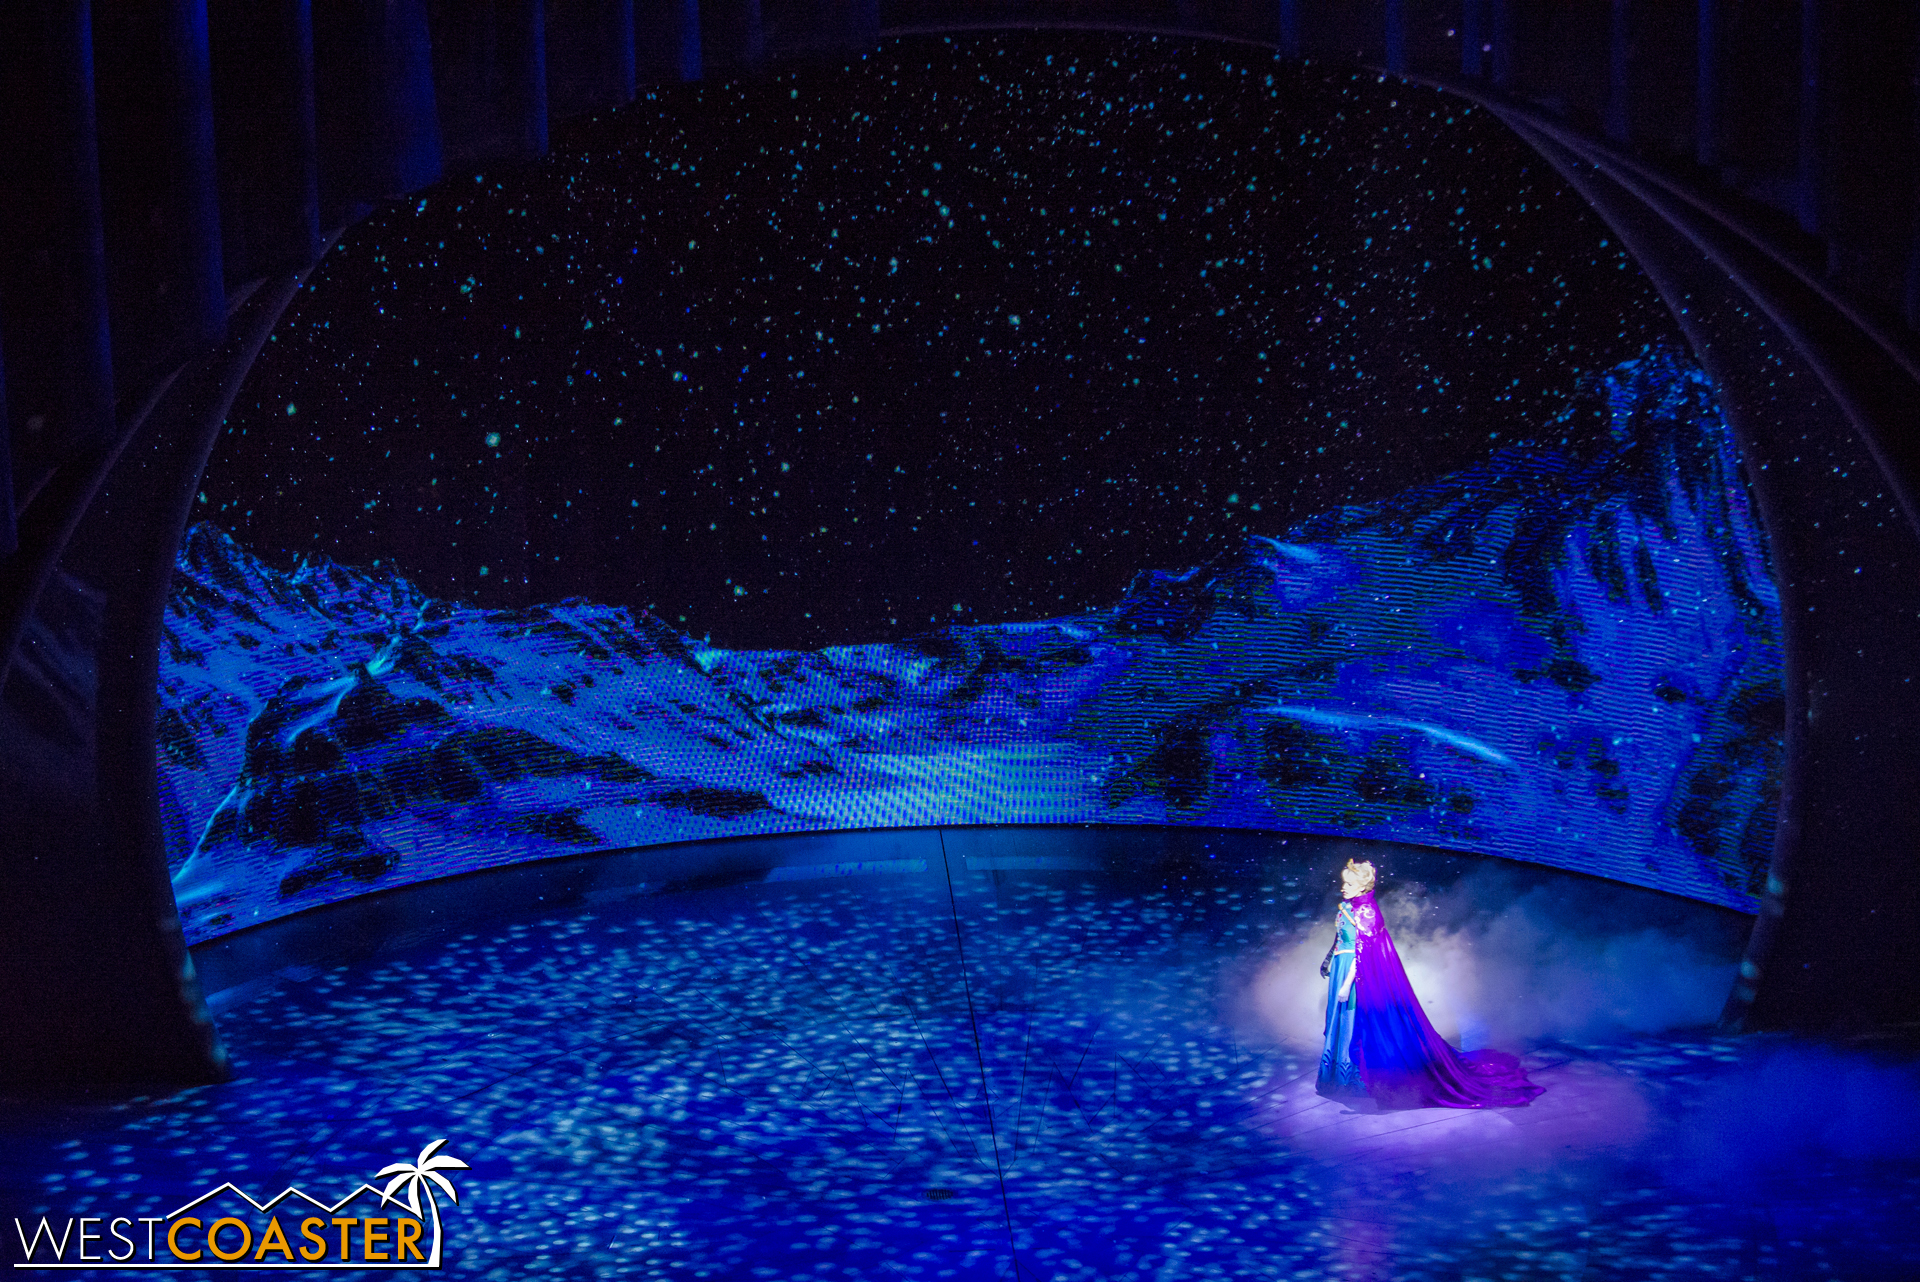 With everyone frozen, Elsa is free to have some peace and quiet.